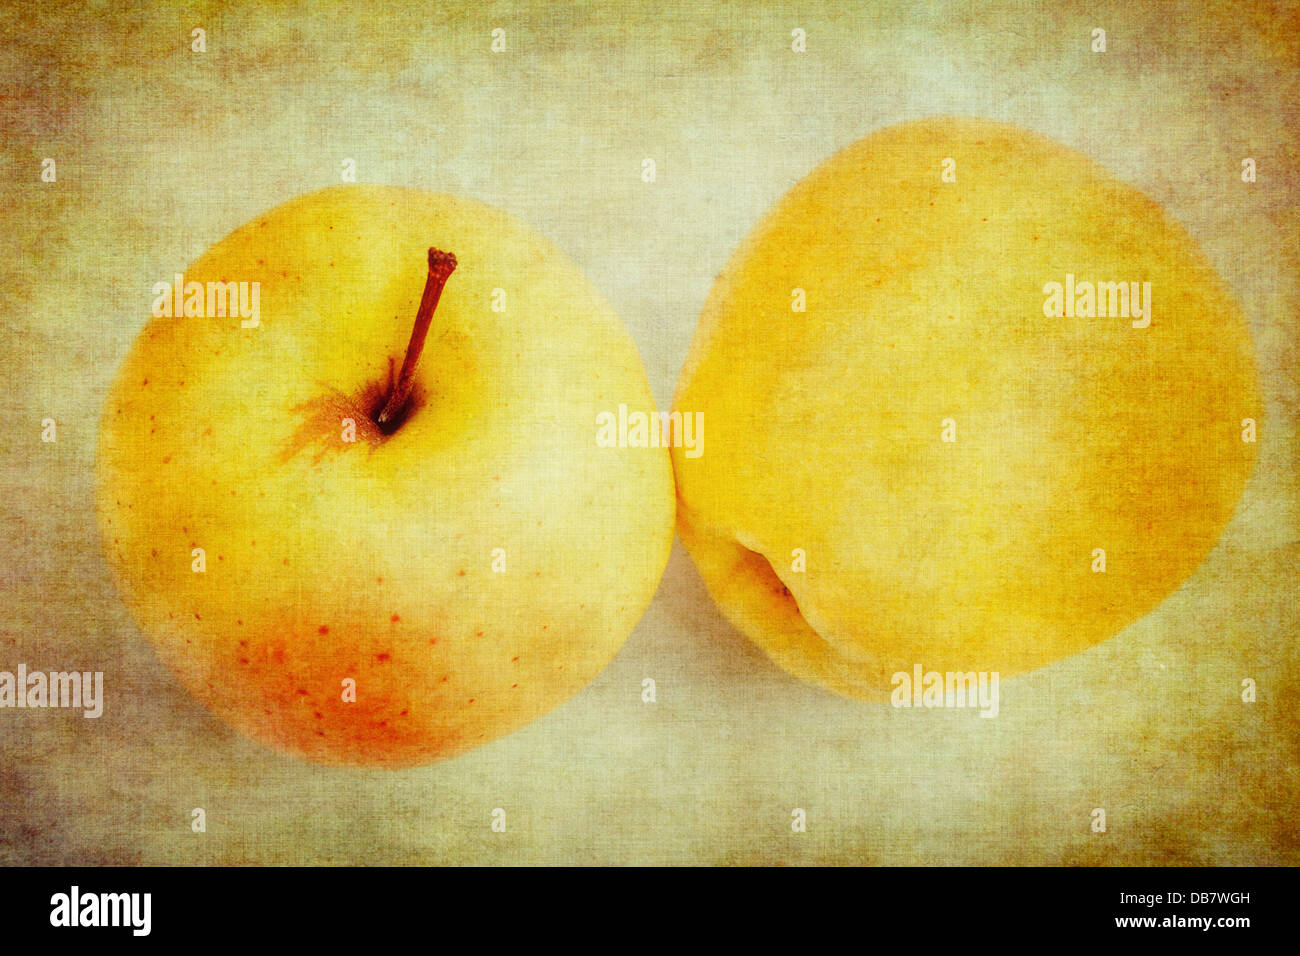 Abstract textured studio shot of two golden delicious apples. - Stock Image